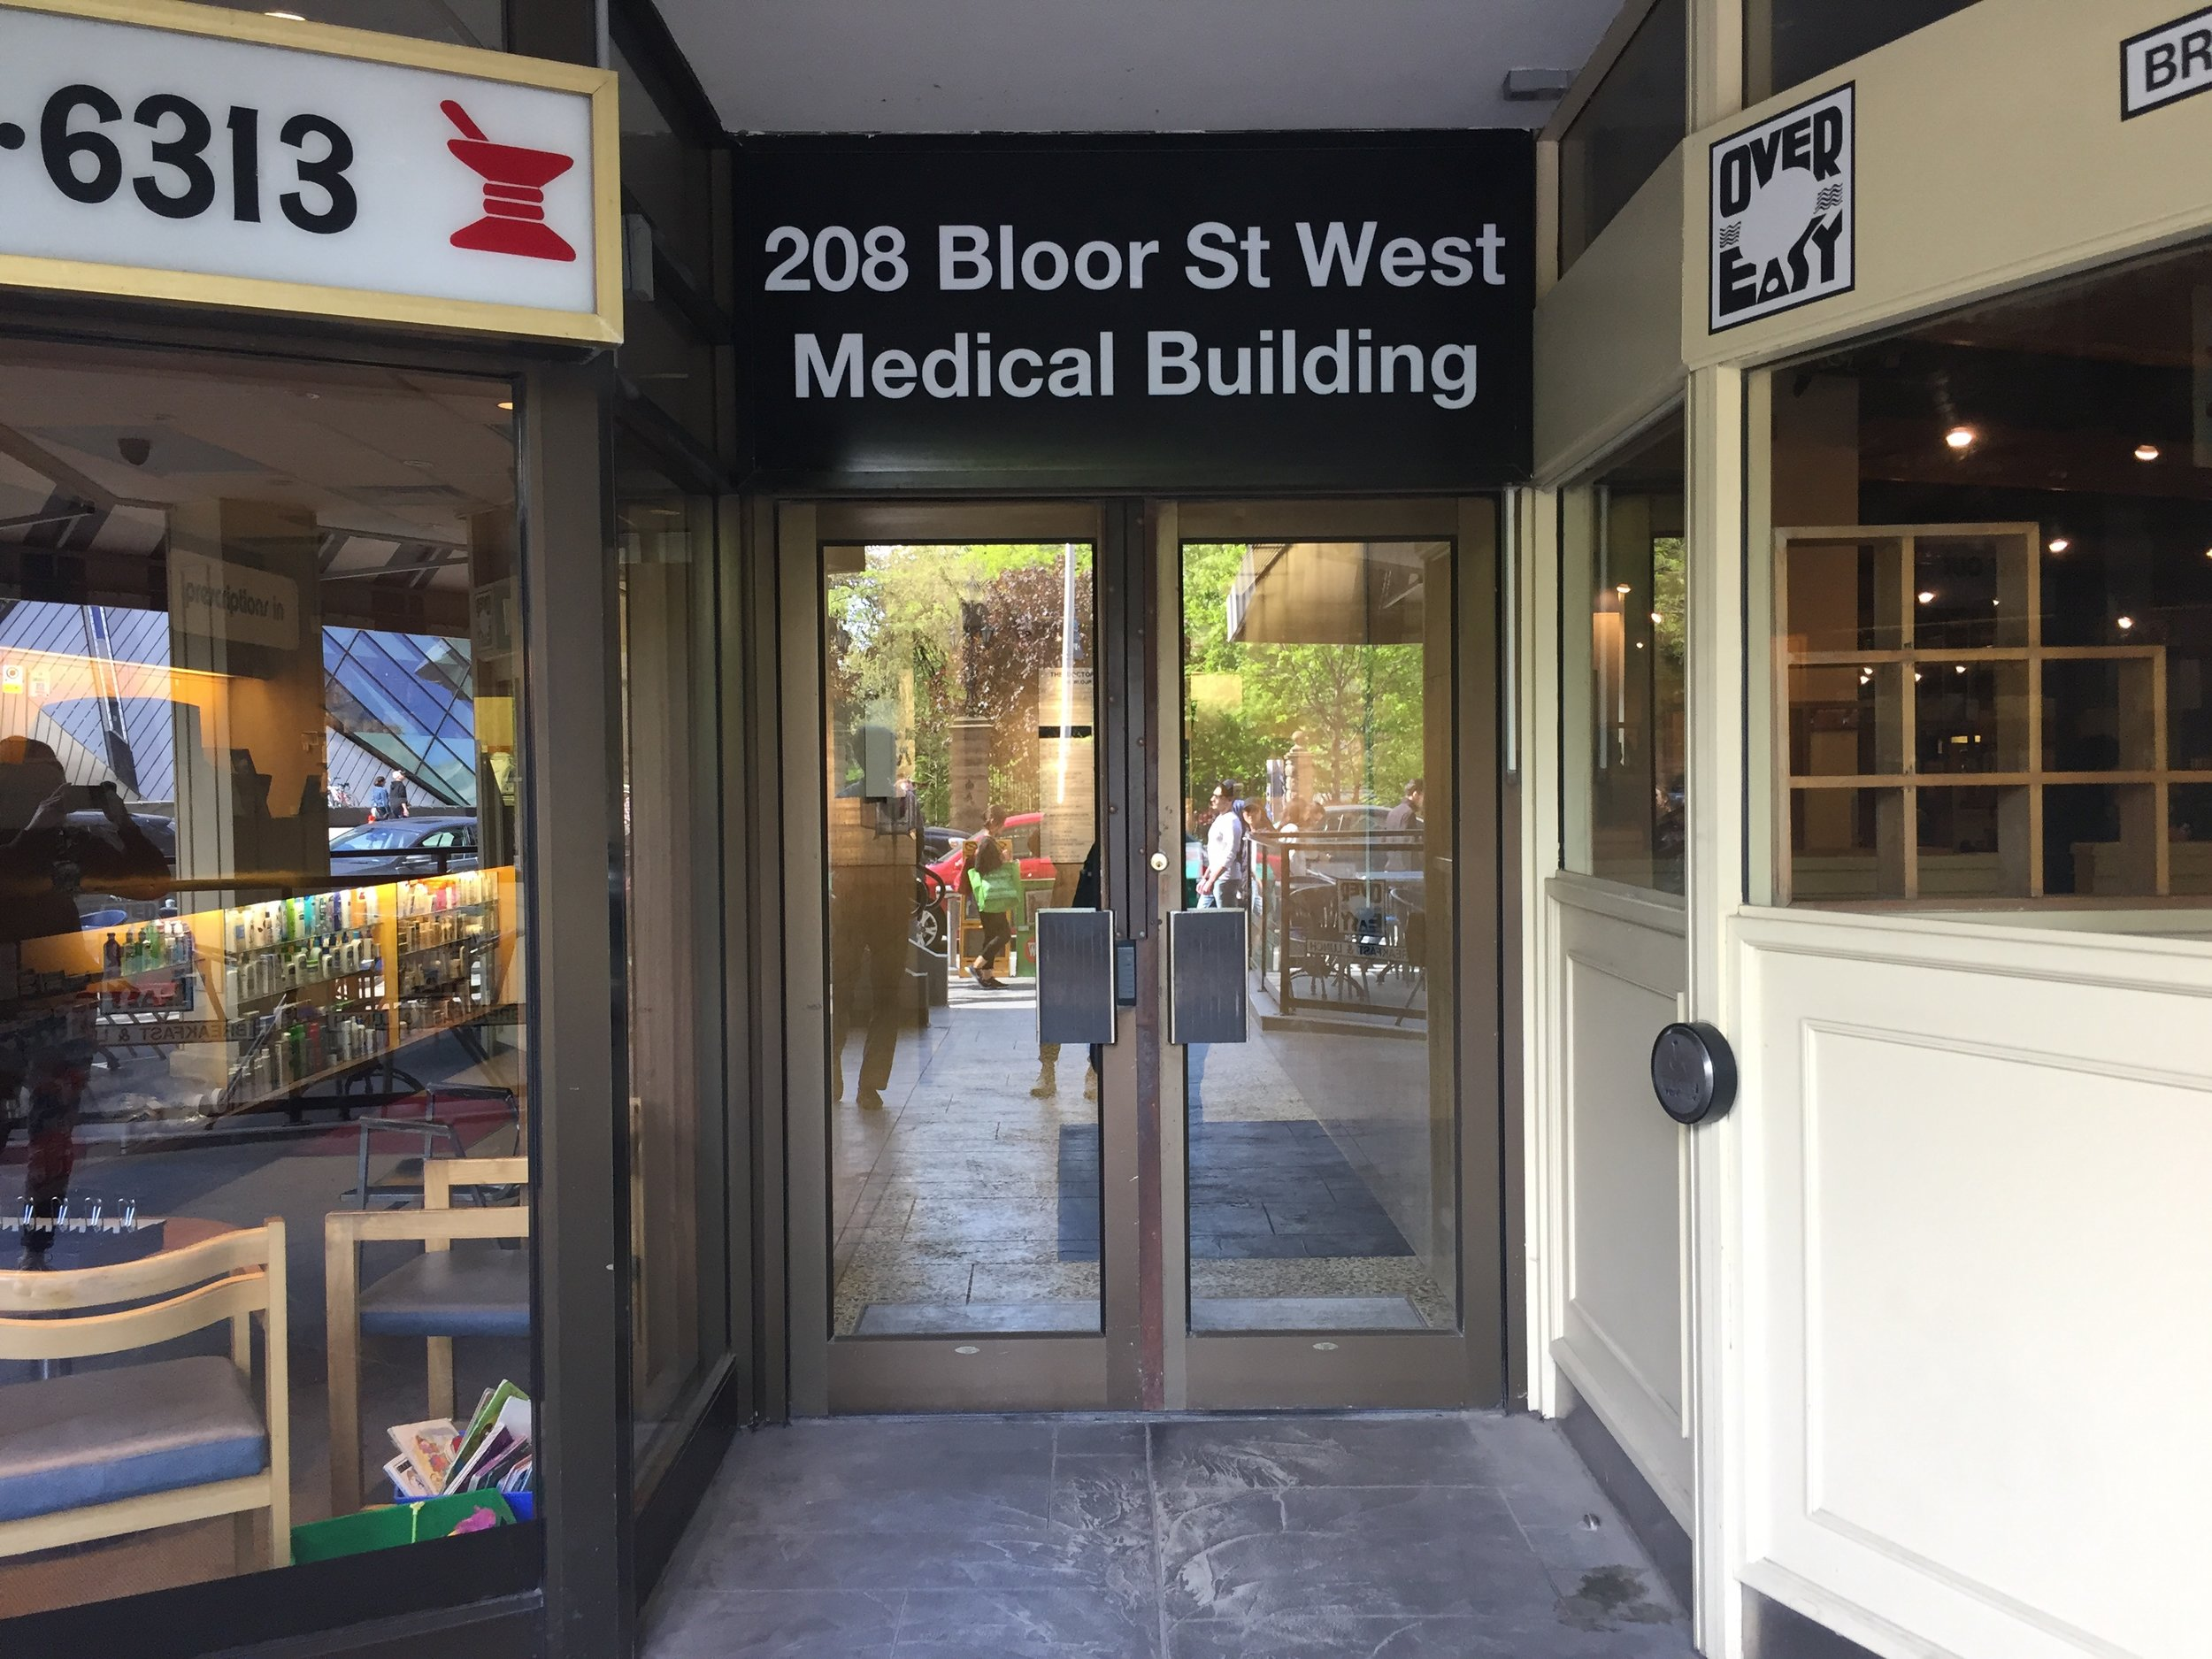 Picture of accessible entrance of the restaurant with automatic door opener